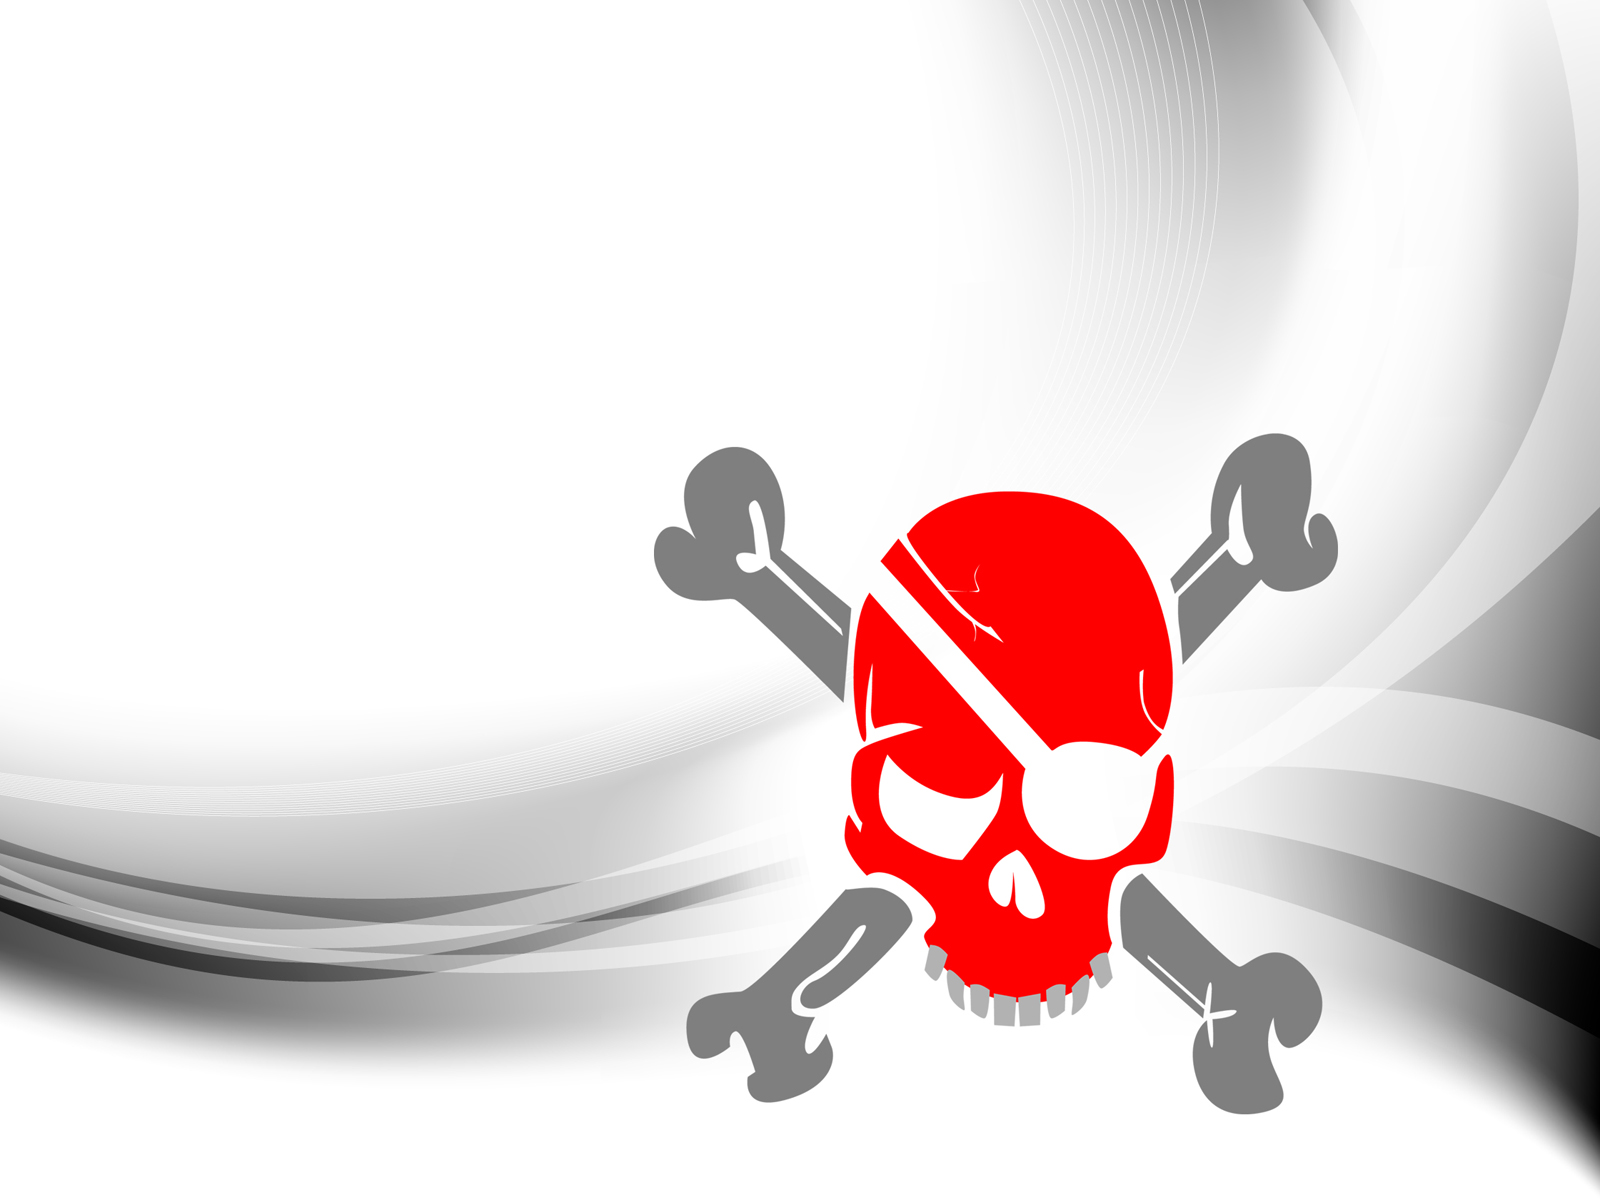 Pirates and war templates ppt backgrounds black design pirates and war ppt templates toneelgroepblik Choice Image